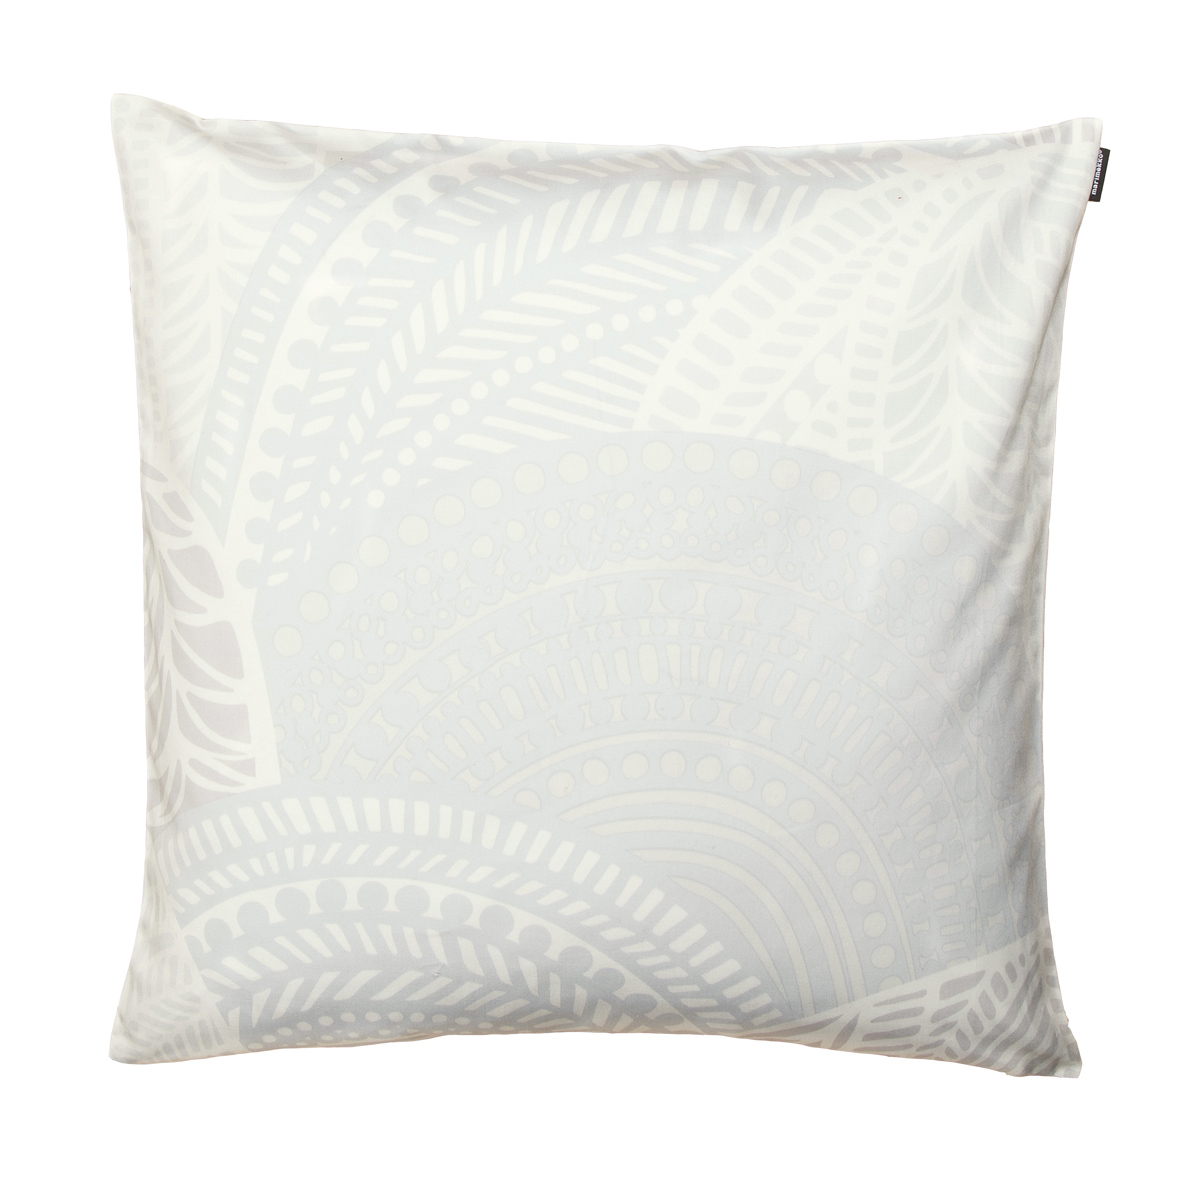 Marimekko Vuorilaakso White Grey Throw Pillow 50 Off